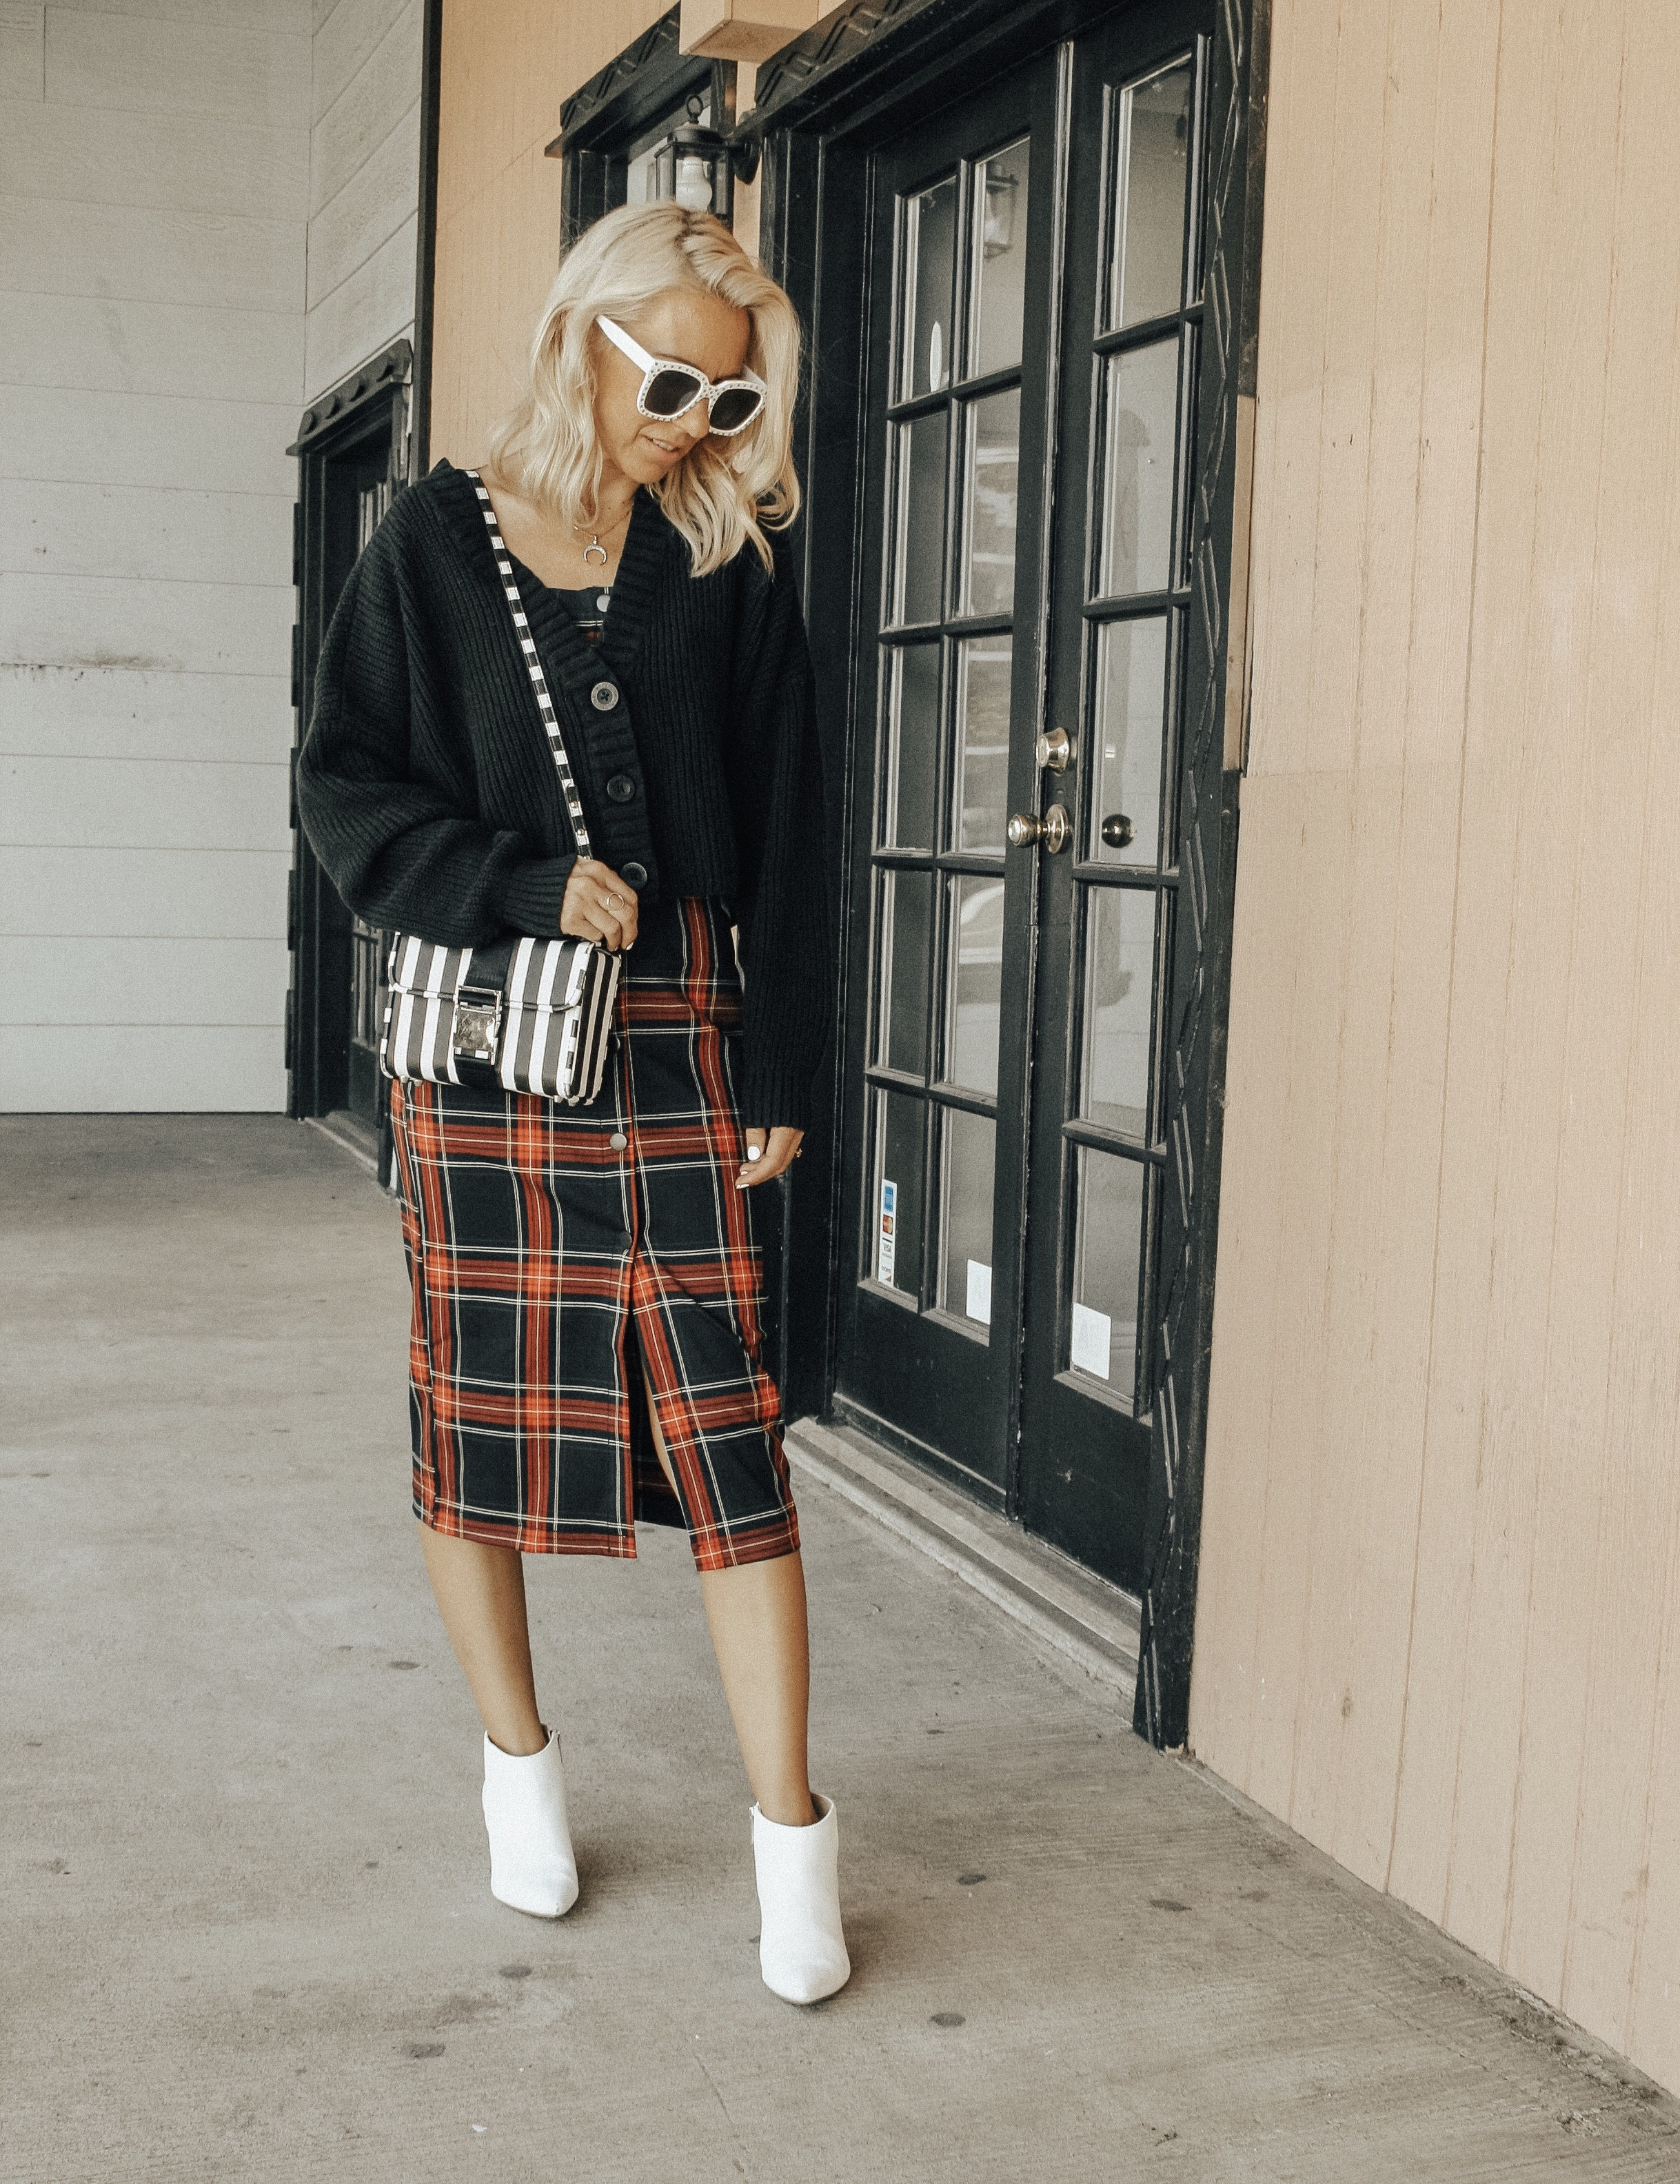 MAD FOR PLAID- Jaclyn De Leon Style + fall fashion + plaid dress + street style + style inspo + cozy sweater cardigan + white boots + striped handbag + 90's fashion + retro style + mom style + asos